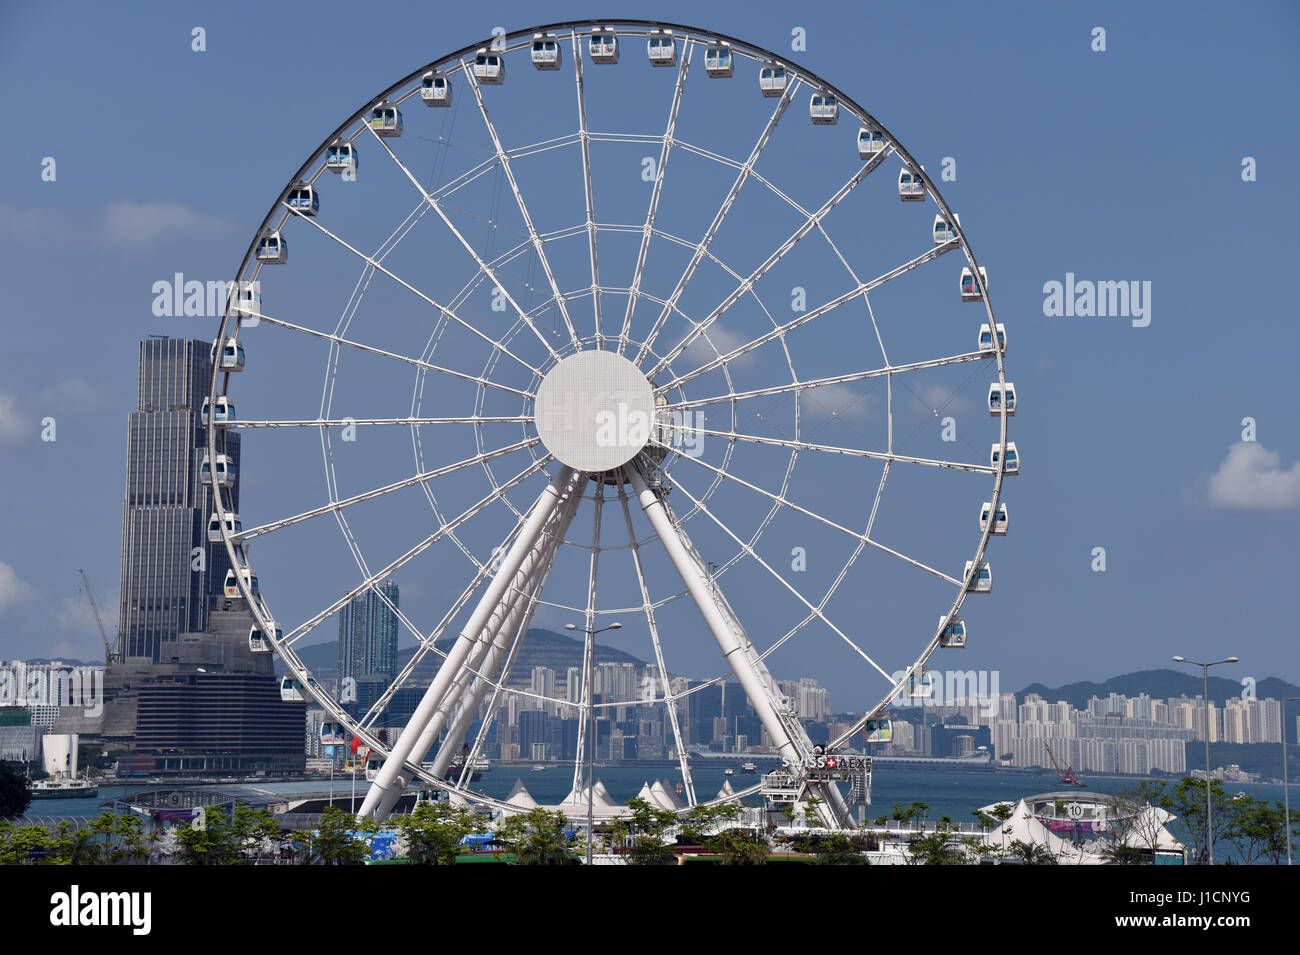 Ferris Wheel, Hong Kong - Stock Image